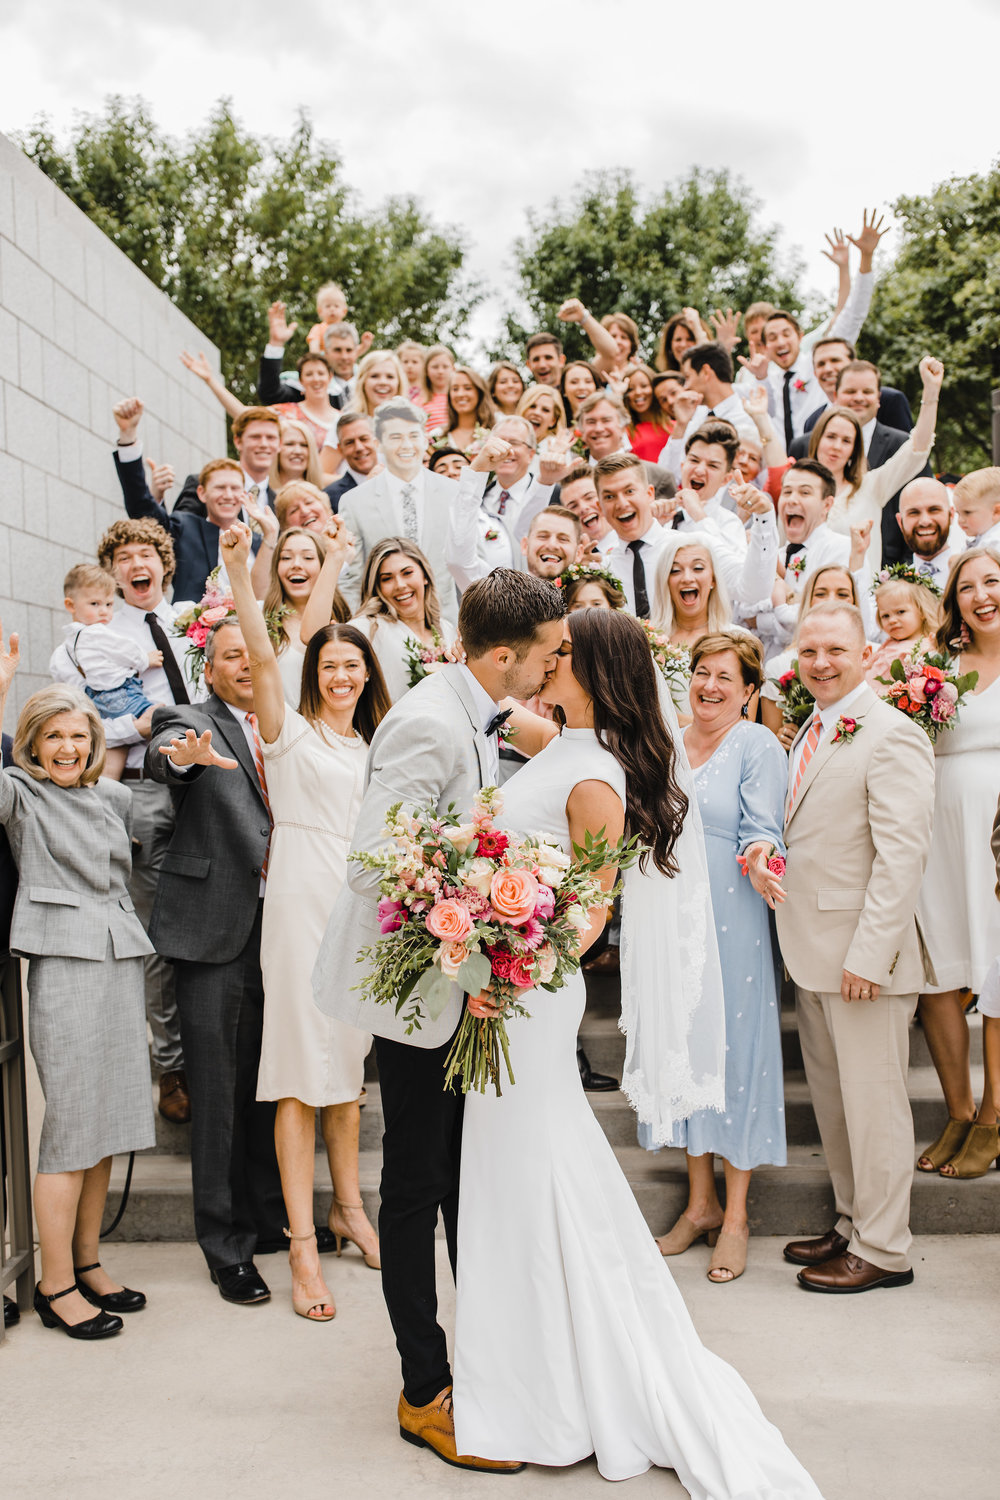 Draper utah wedding photographer wedding exit family cheering lds temple